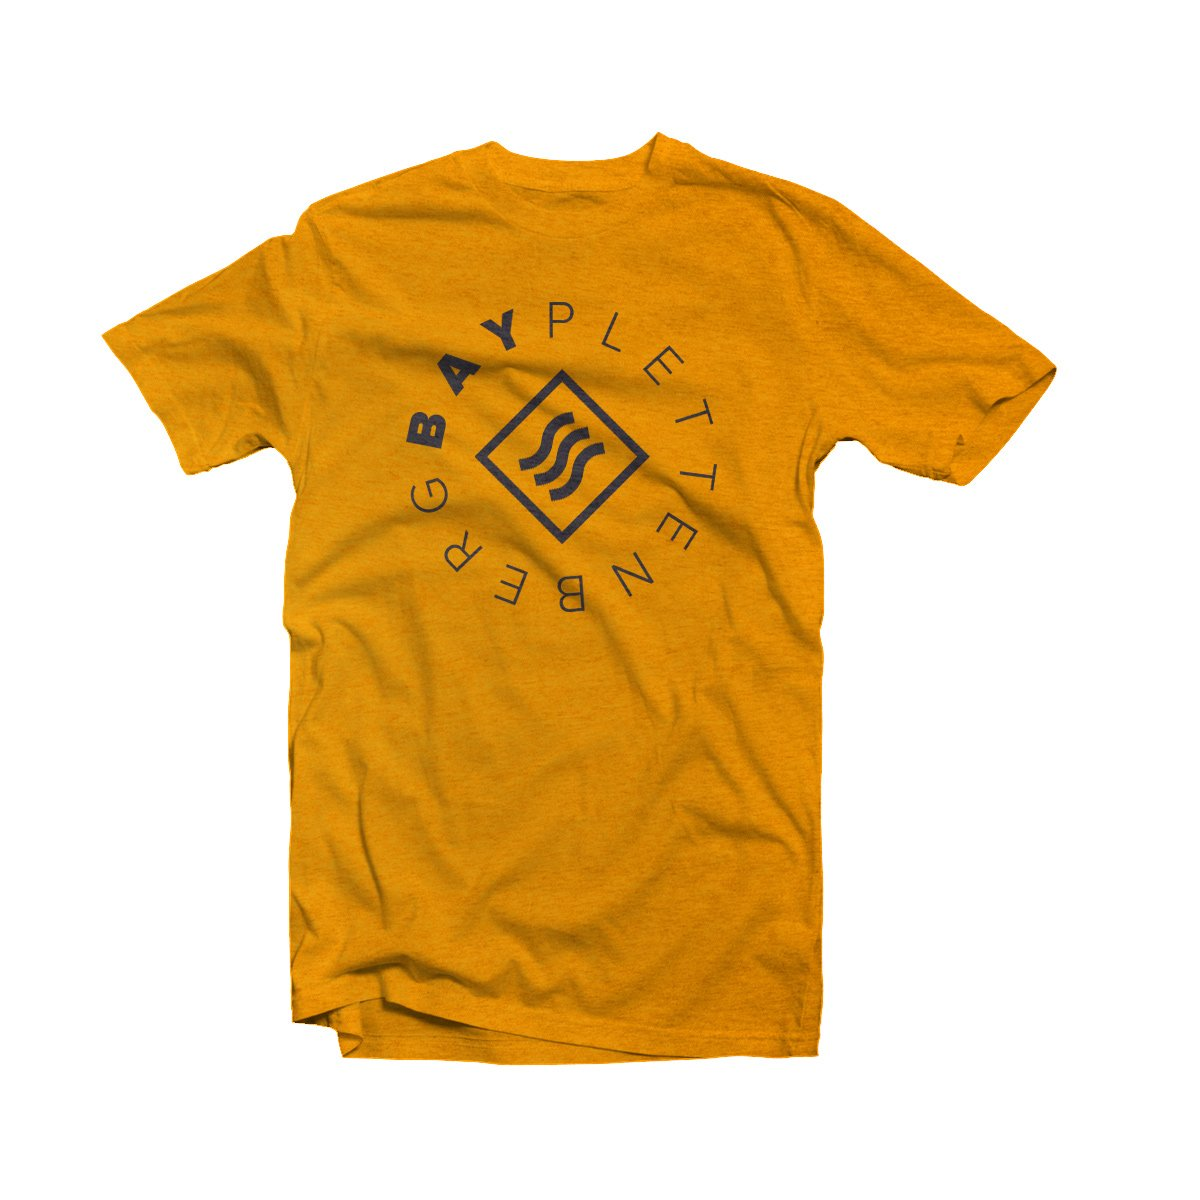 Surfing Life Burnt Orange Plettenberg Bay T-shirt Image